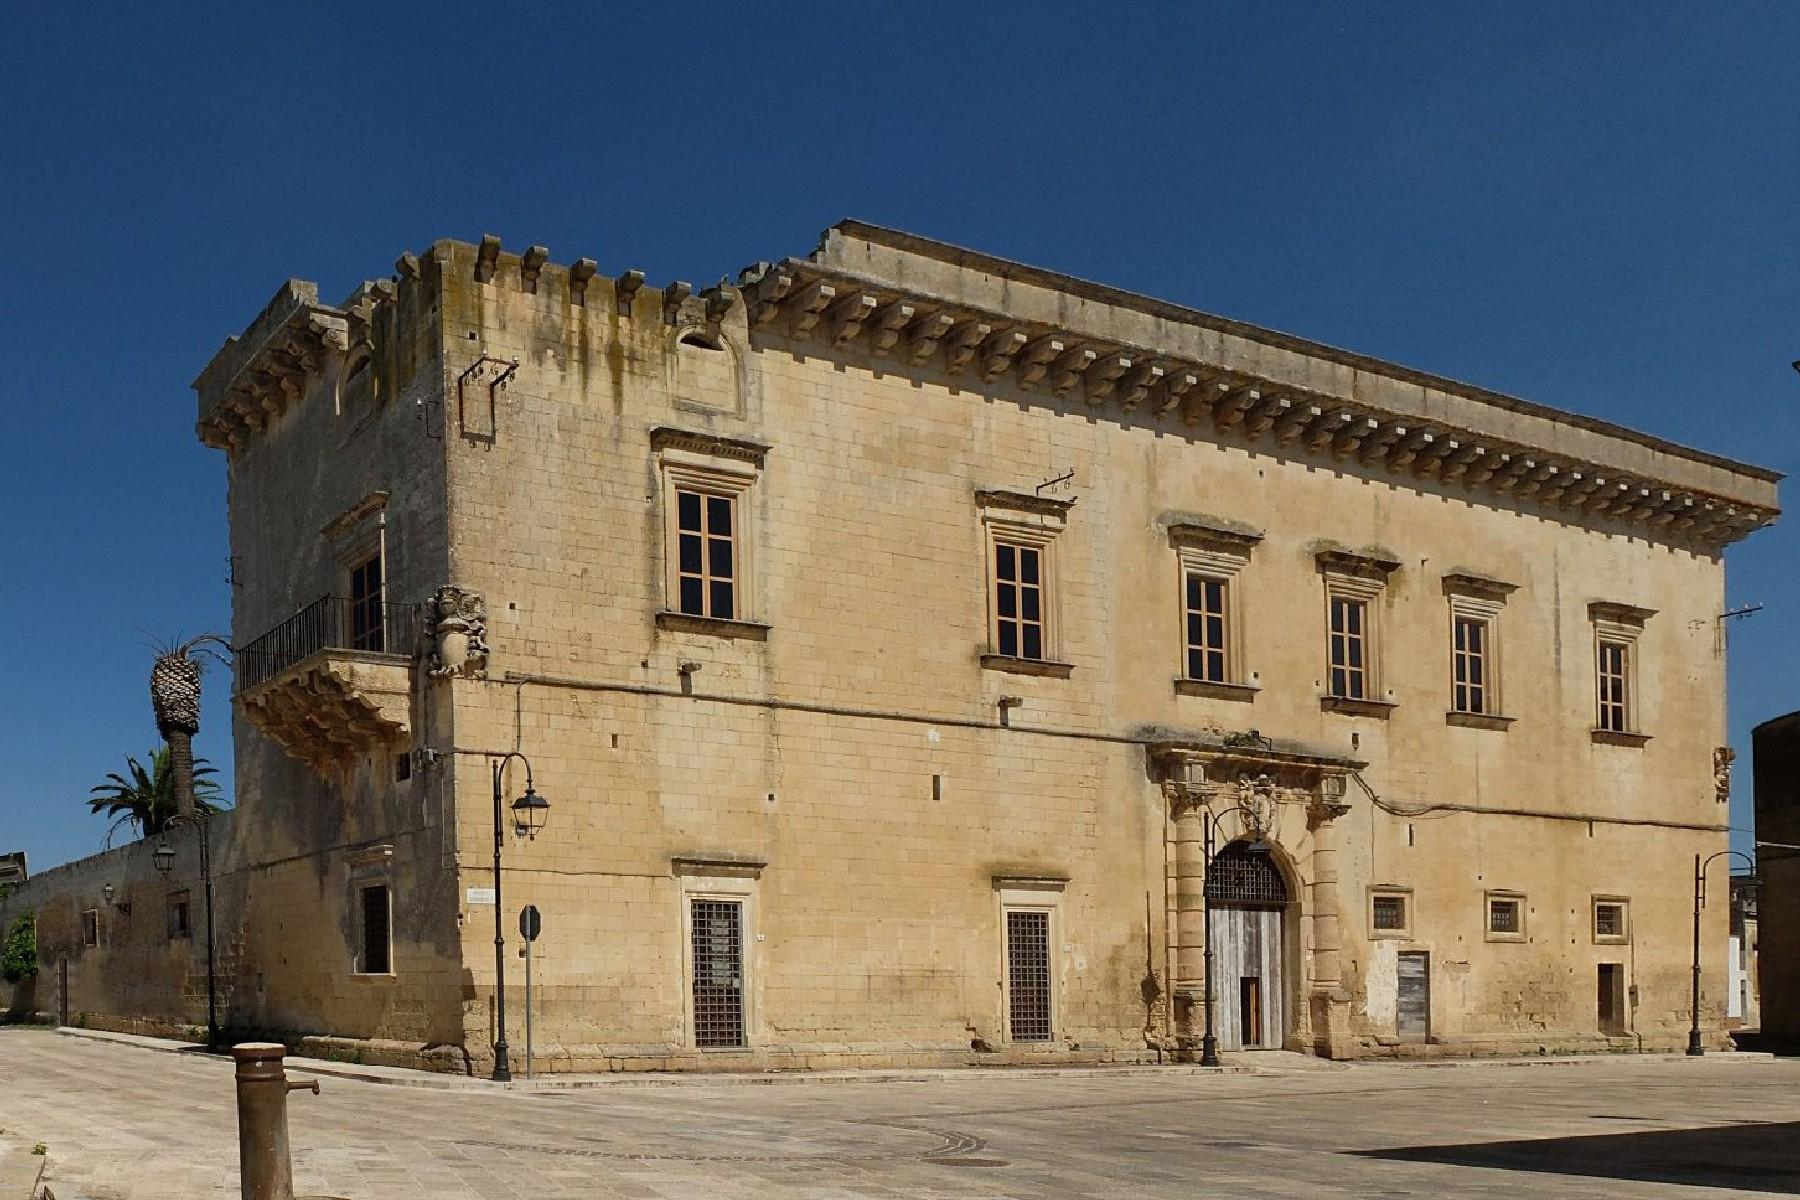 Ancient and imposing Palace in the neighborhood of the Baroque city of Lecce - 13